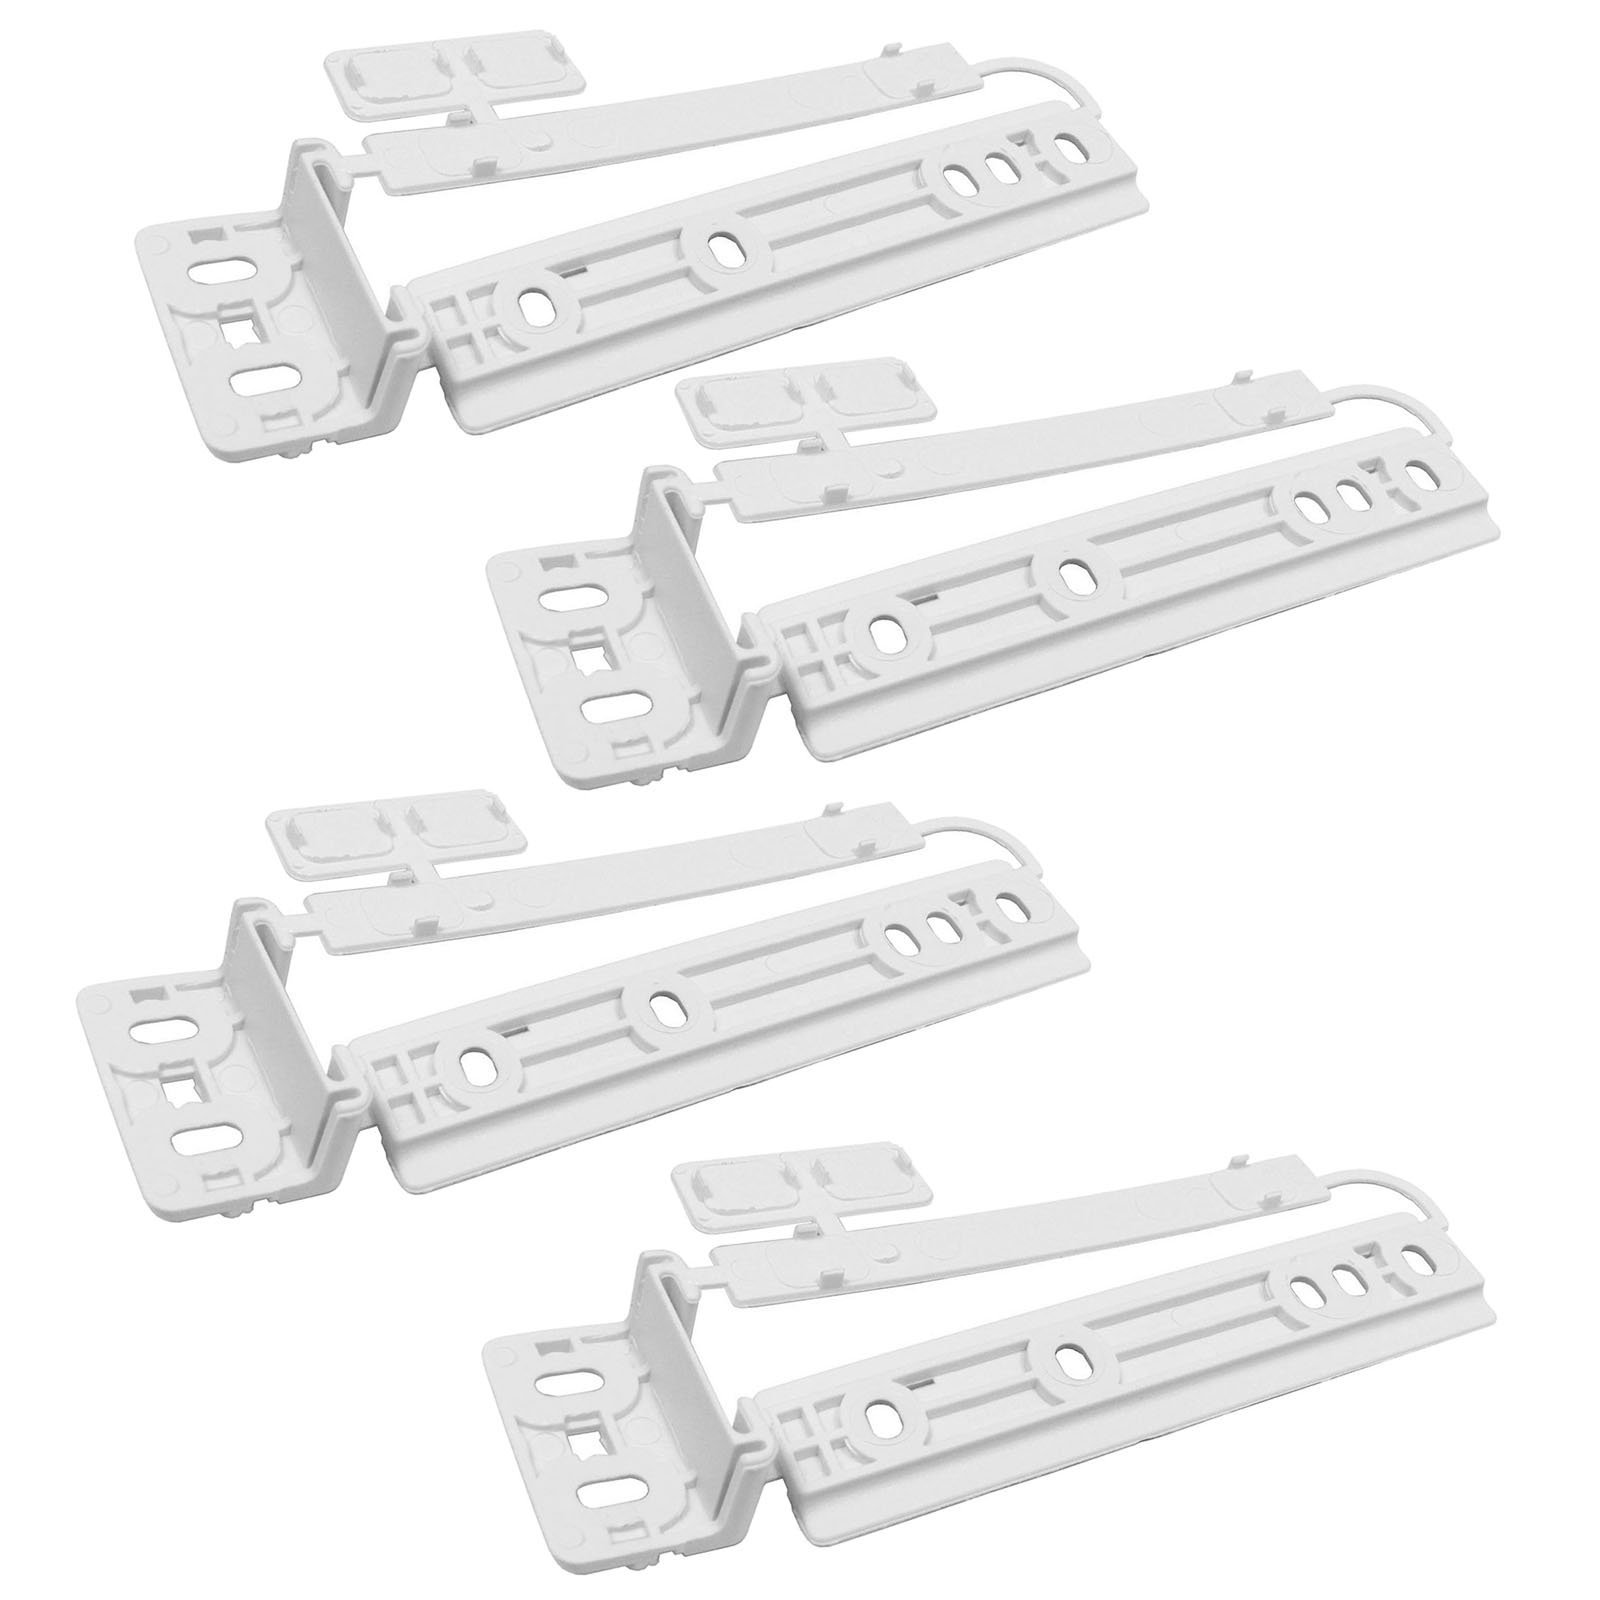 Ikea FROSTIG FRYSA Fridge Freezer Door Mounting Brackets Plastic Slide Fixing Kit (4 Pack)